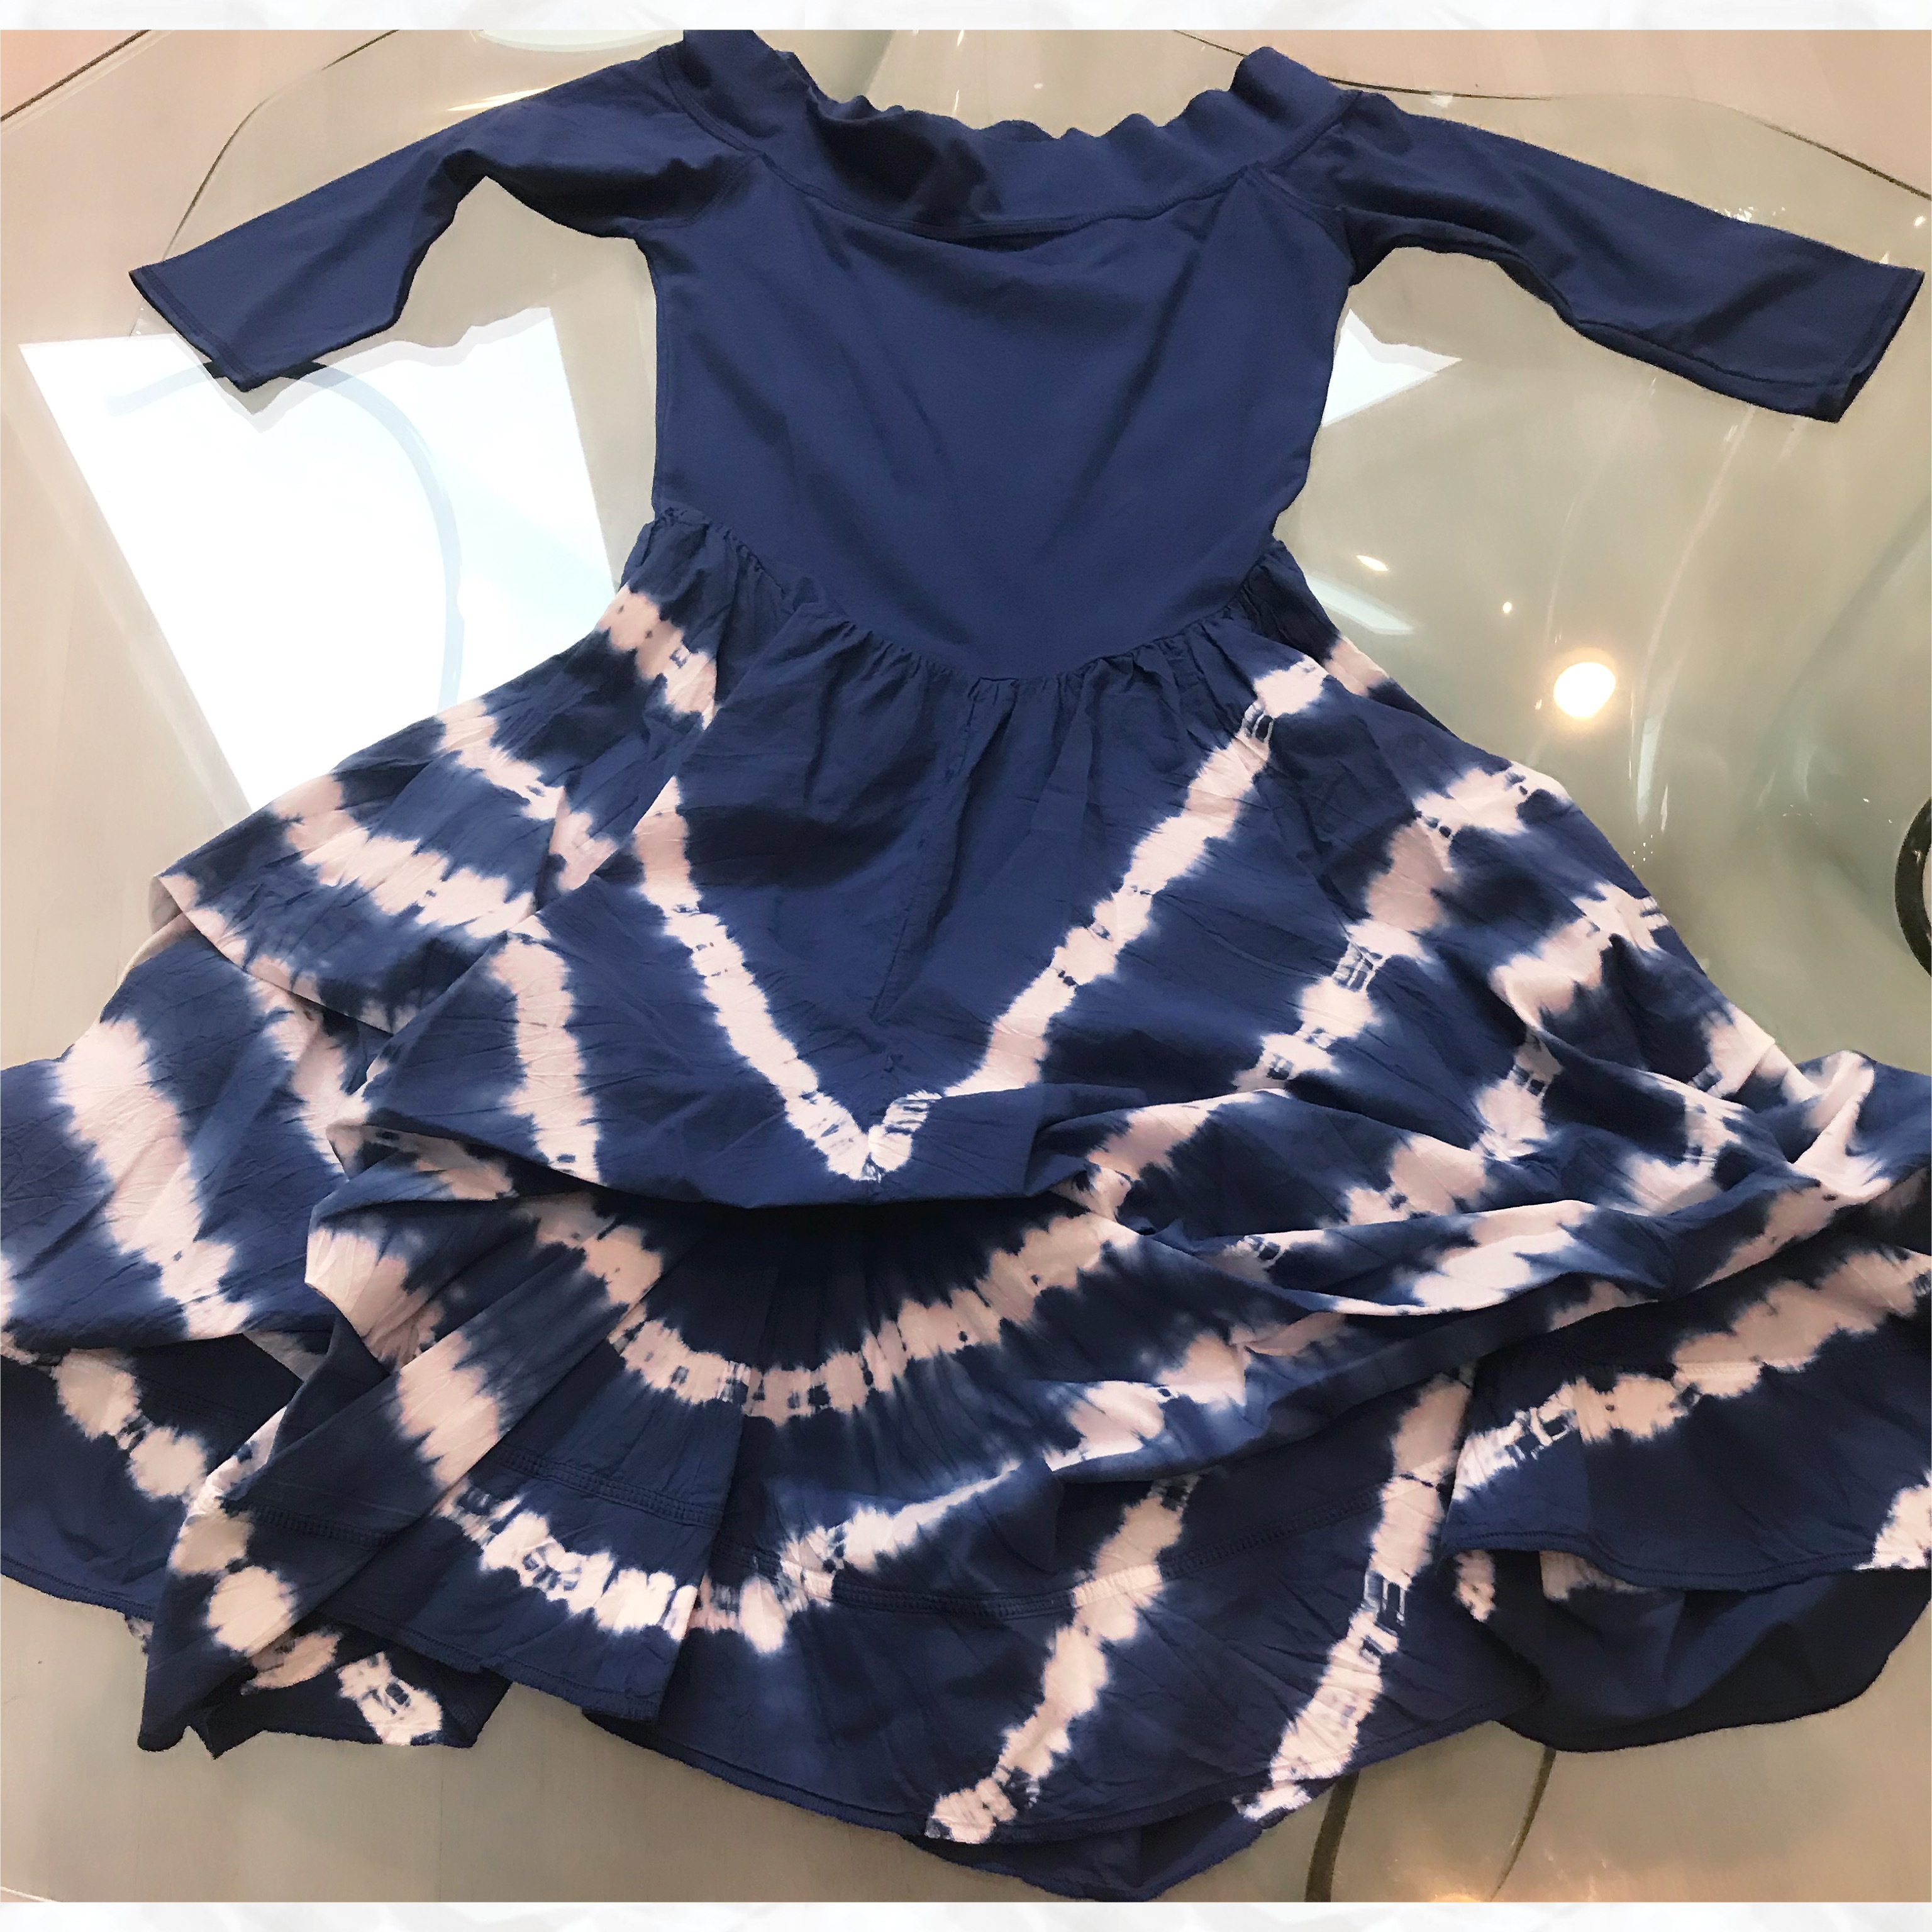 Luna Luz: Tied & Dyed Off Shoulder Diagonal Striped Hem Dress (Ships Immed in Navy!) LL_393T_BDS_NAVY